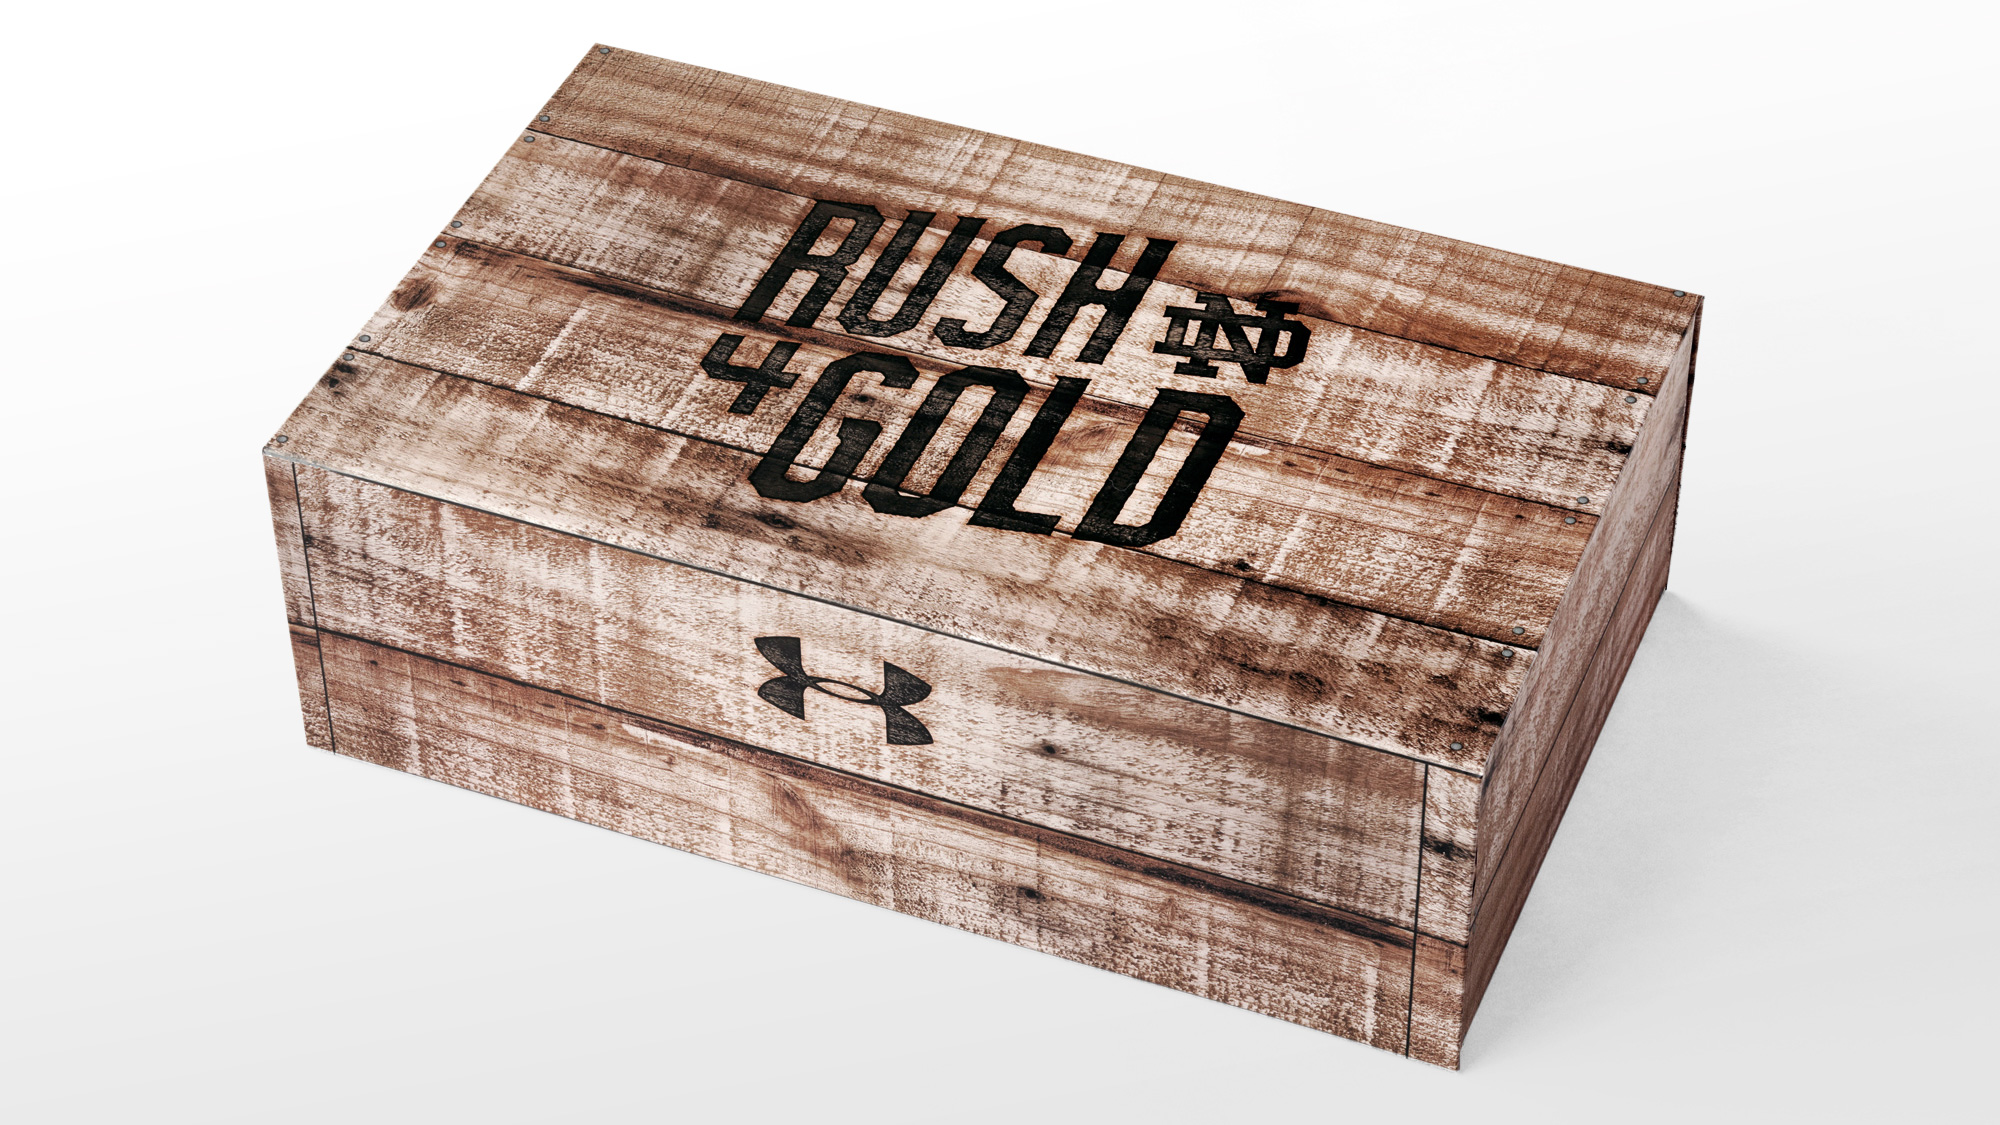 Under Armour: Rush4Gold